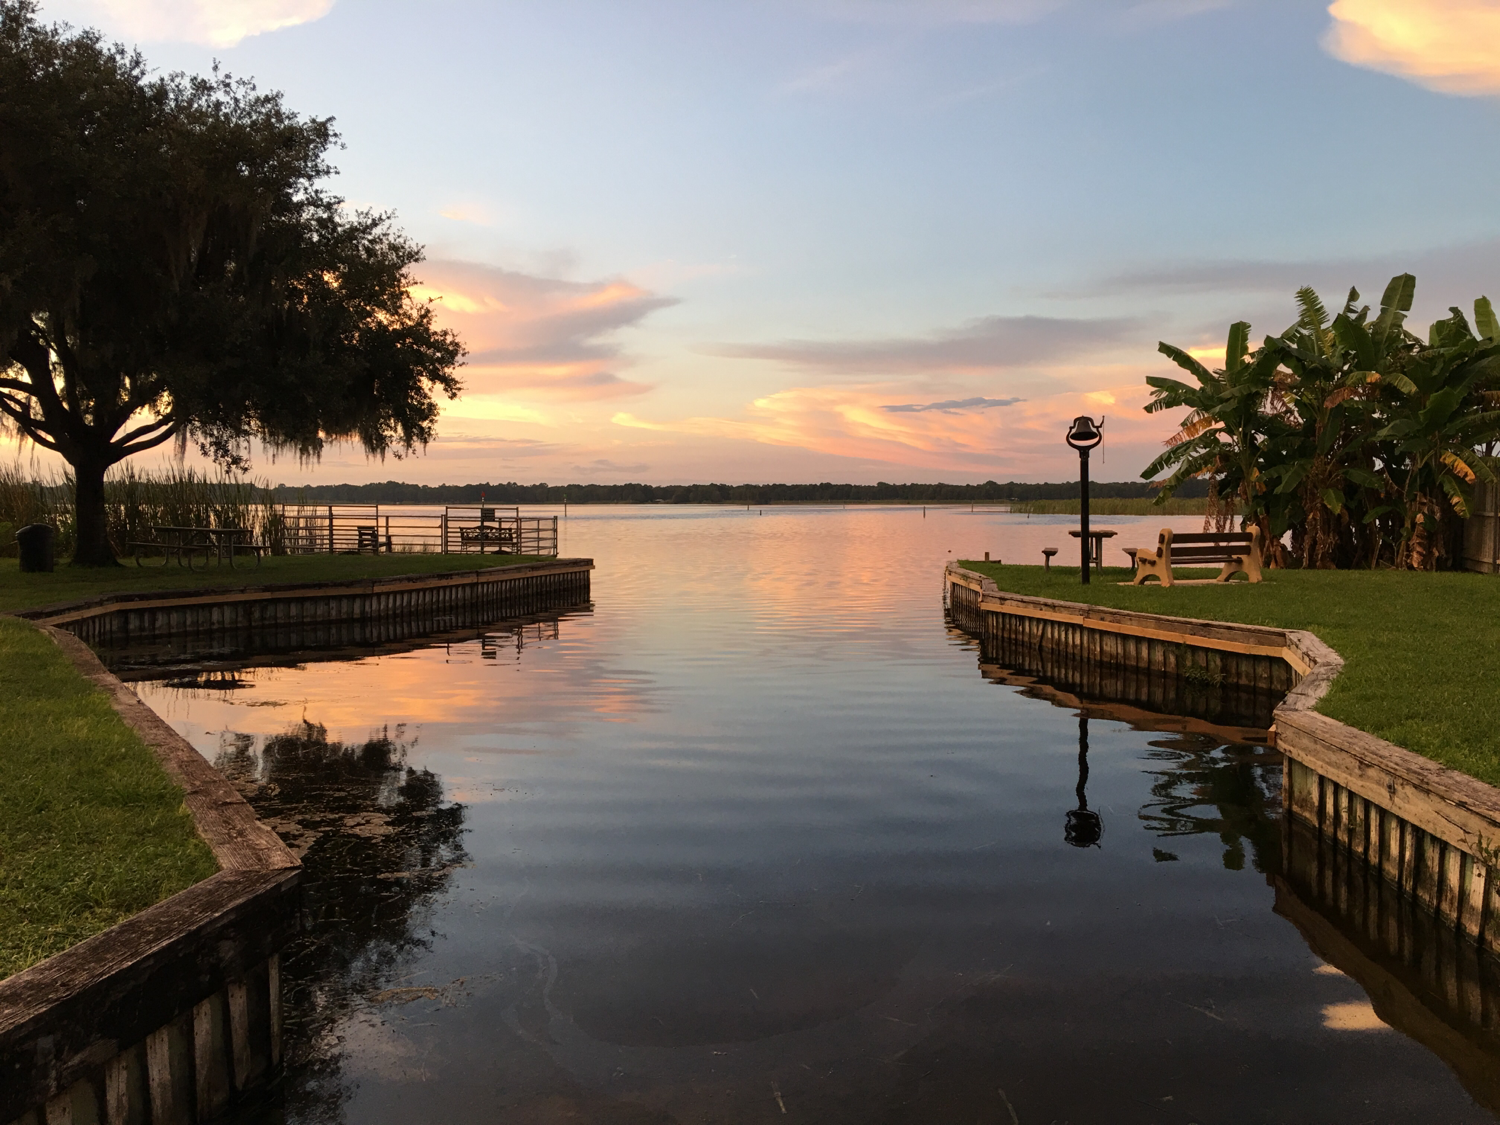 Crystal river rv parks reviews and photos for Florida fishing lodges